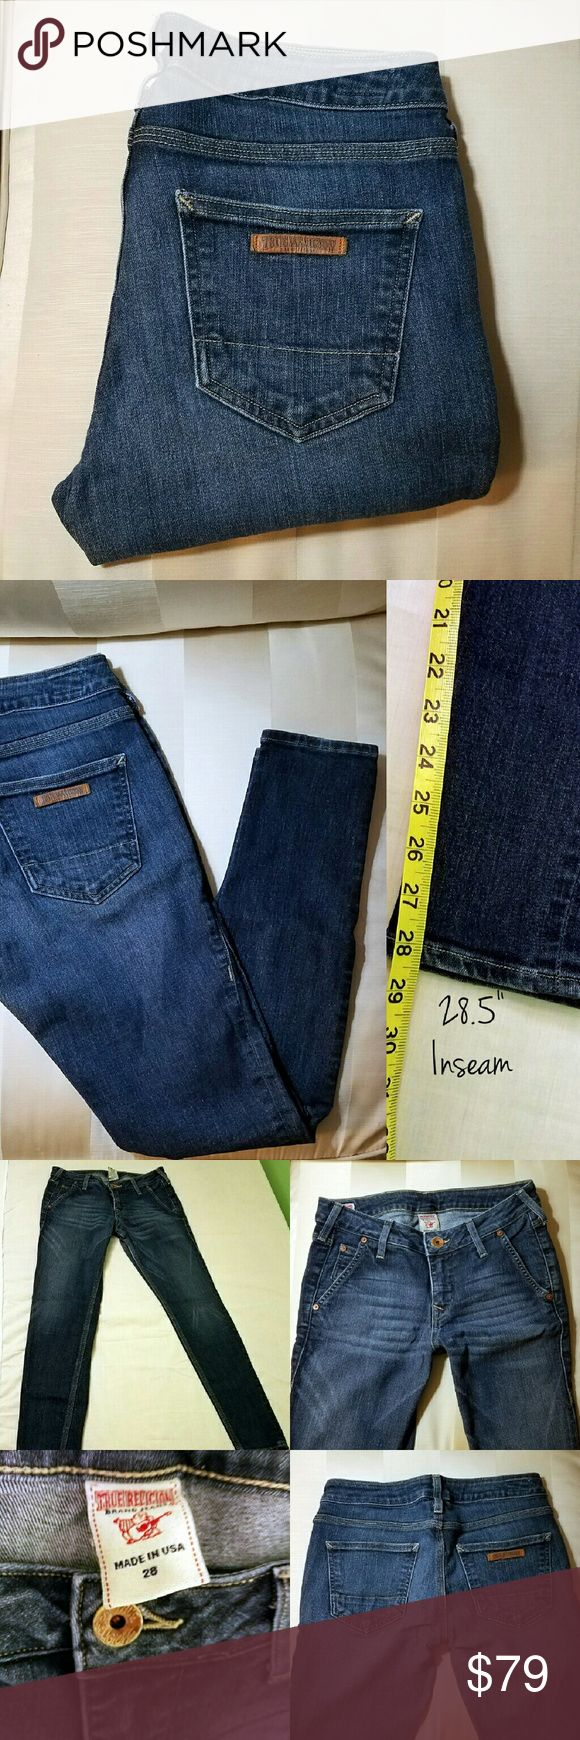 "True Religion Skinnies EUC: worn a few times but still in excellent condition  INSEAM: 28.5"" SIZE: 28 COLOR: Darkwash  Super cozy with a good amount of stretch to them. More of a thicker jegging material/look to them. Love them, just don't fit me anymore.  OFFERS WELCOME (EXCLUDES ""final sale"" Items). BUNDLE &SAVE! THANKS FOR STOPPING BY! -Bobbie True Religion Jeans Skinny"